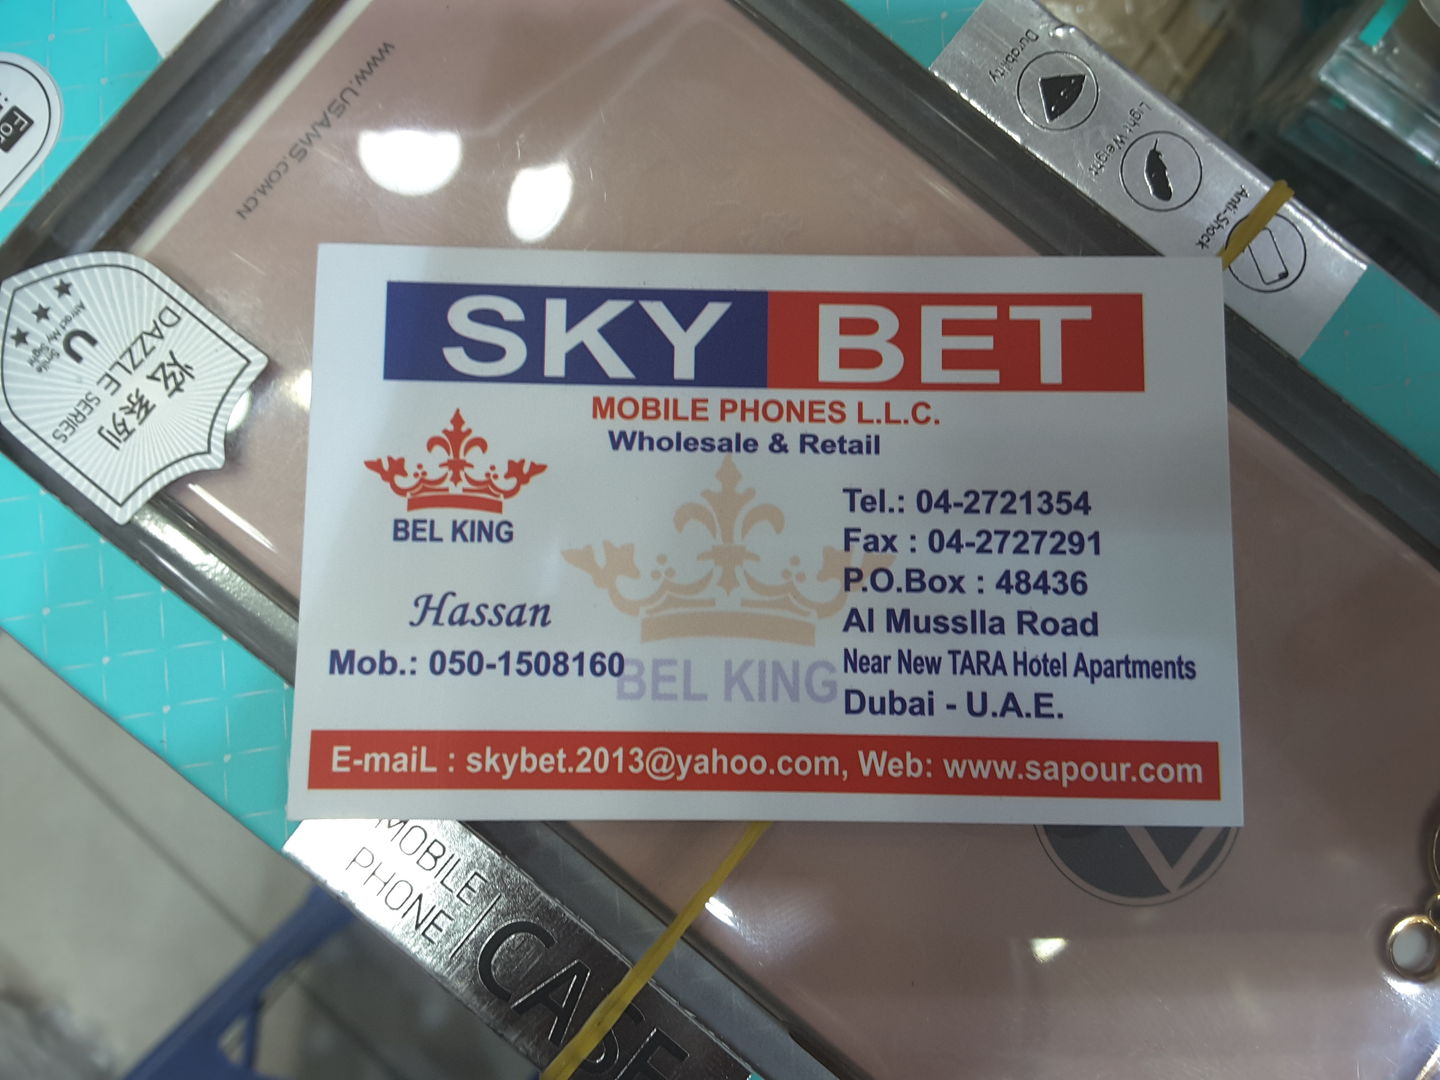 Walif-business-sky-bet-mobile-phone